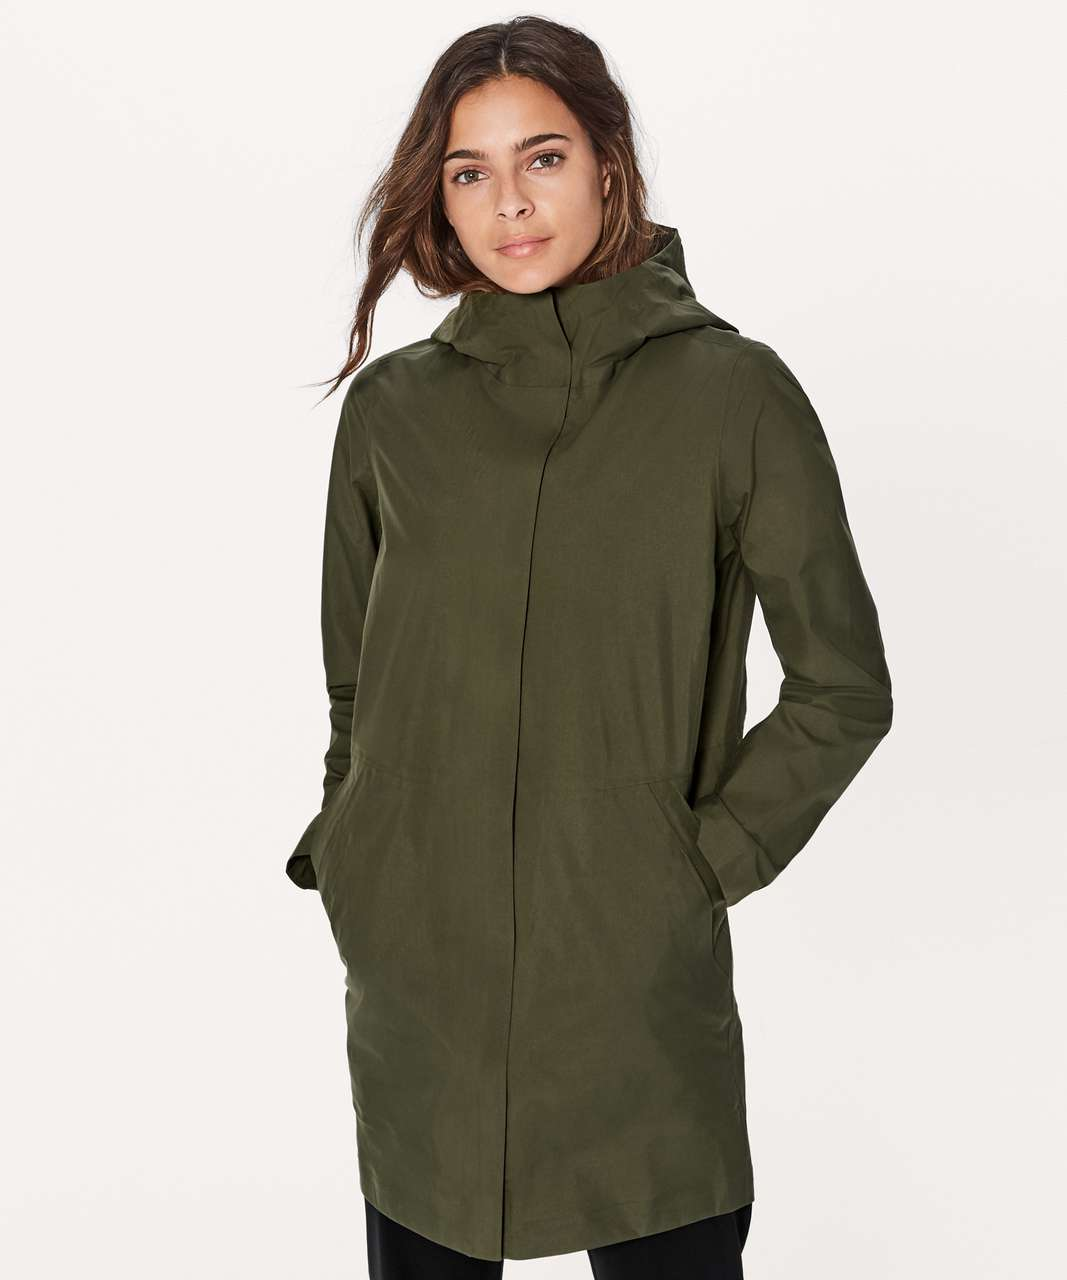 Lululemon Rain Haven Jacket - Armory